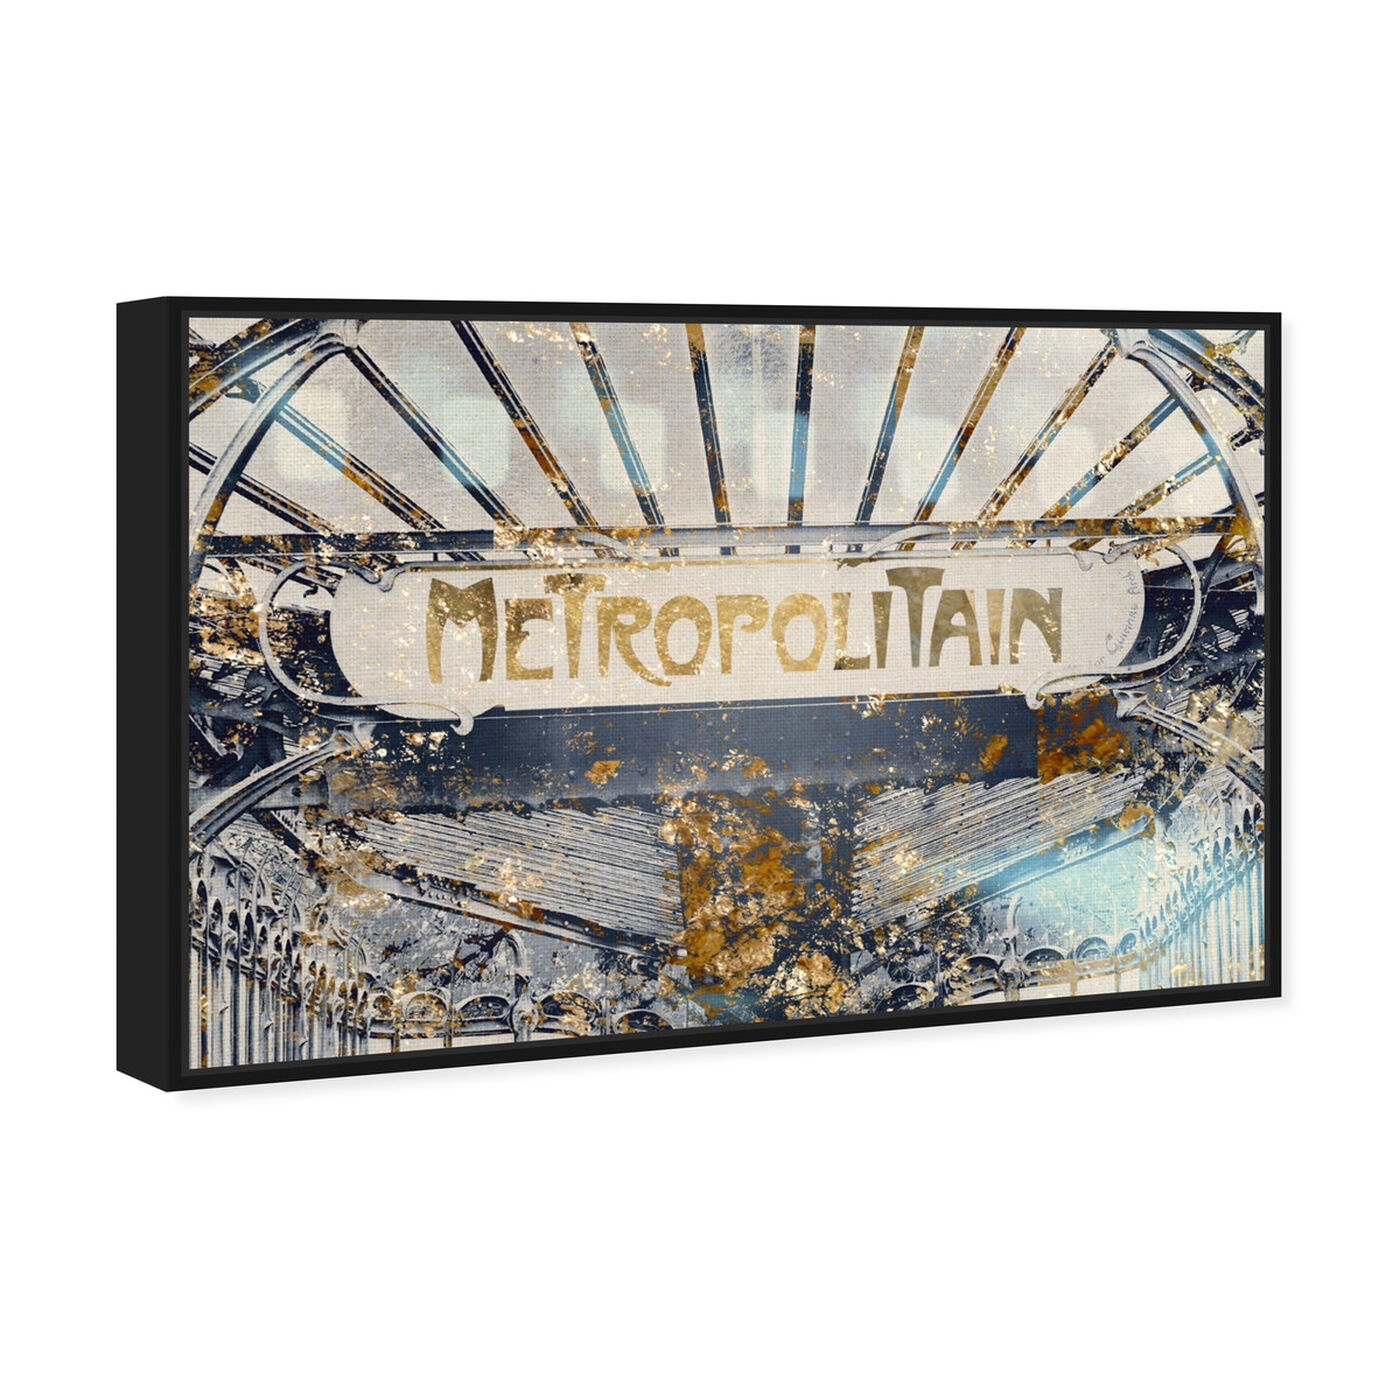 Angled view of Metropolitain Gold featuring architecture and buildings and united states buildings art.